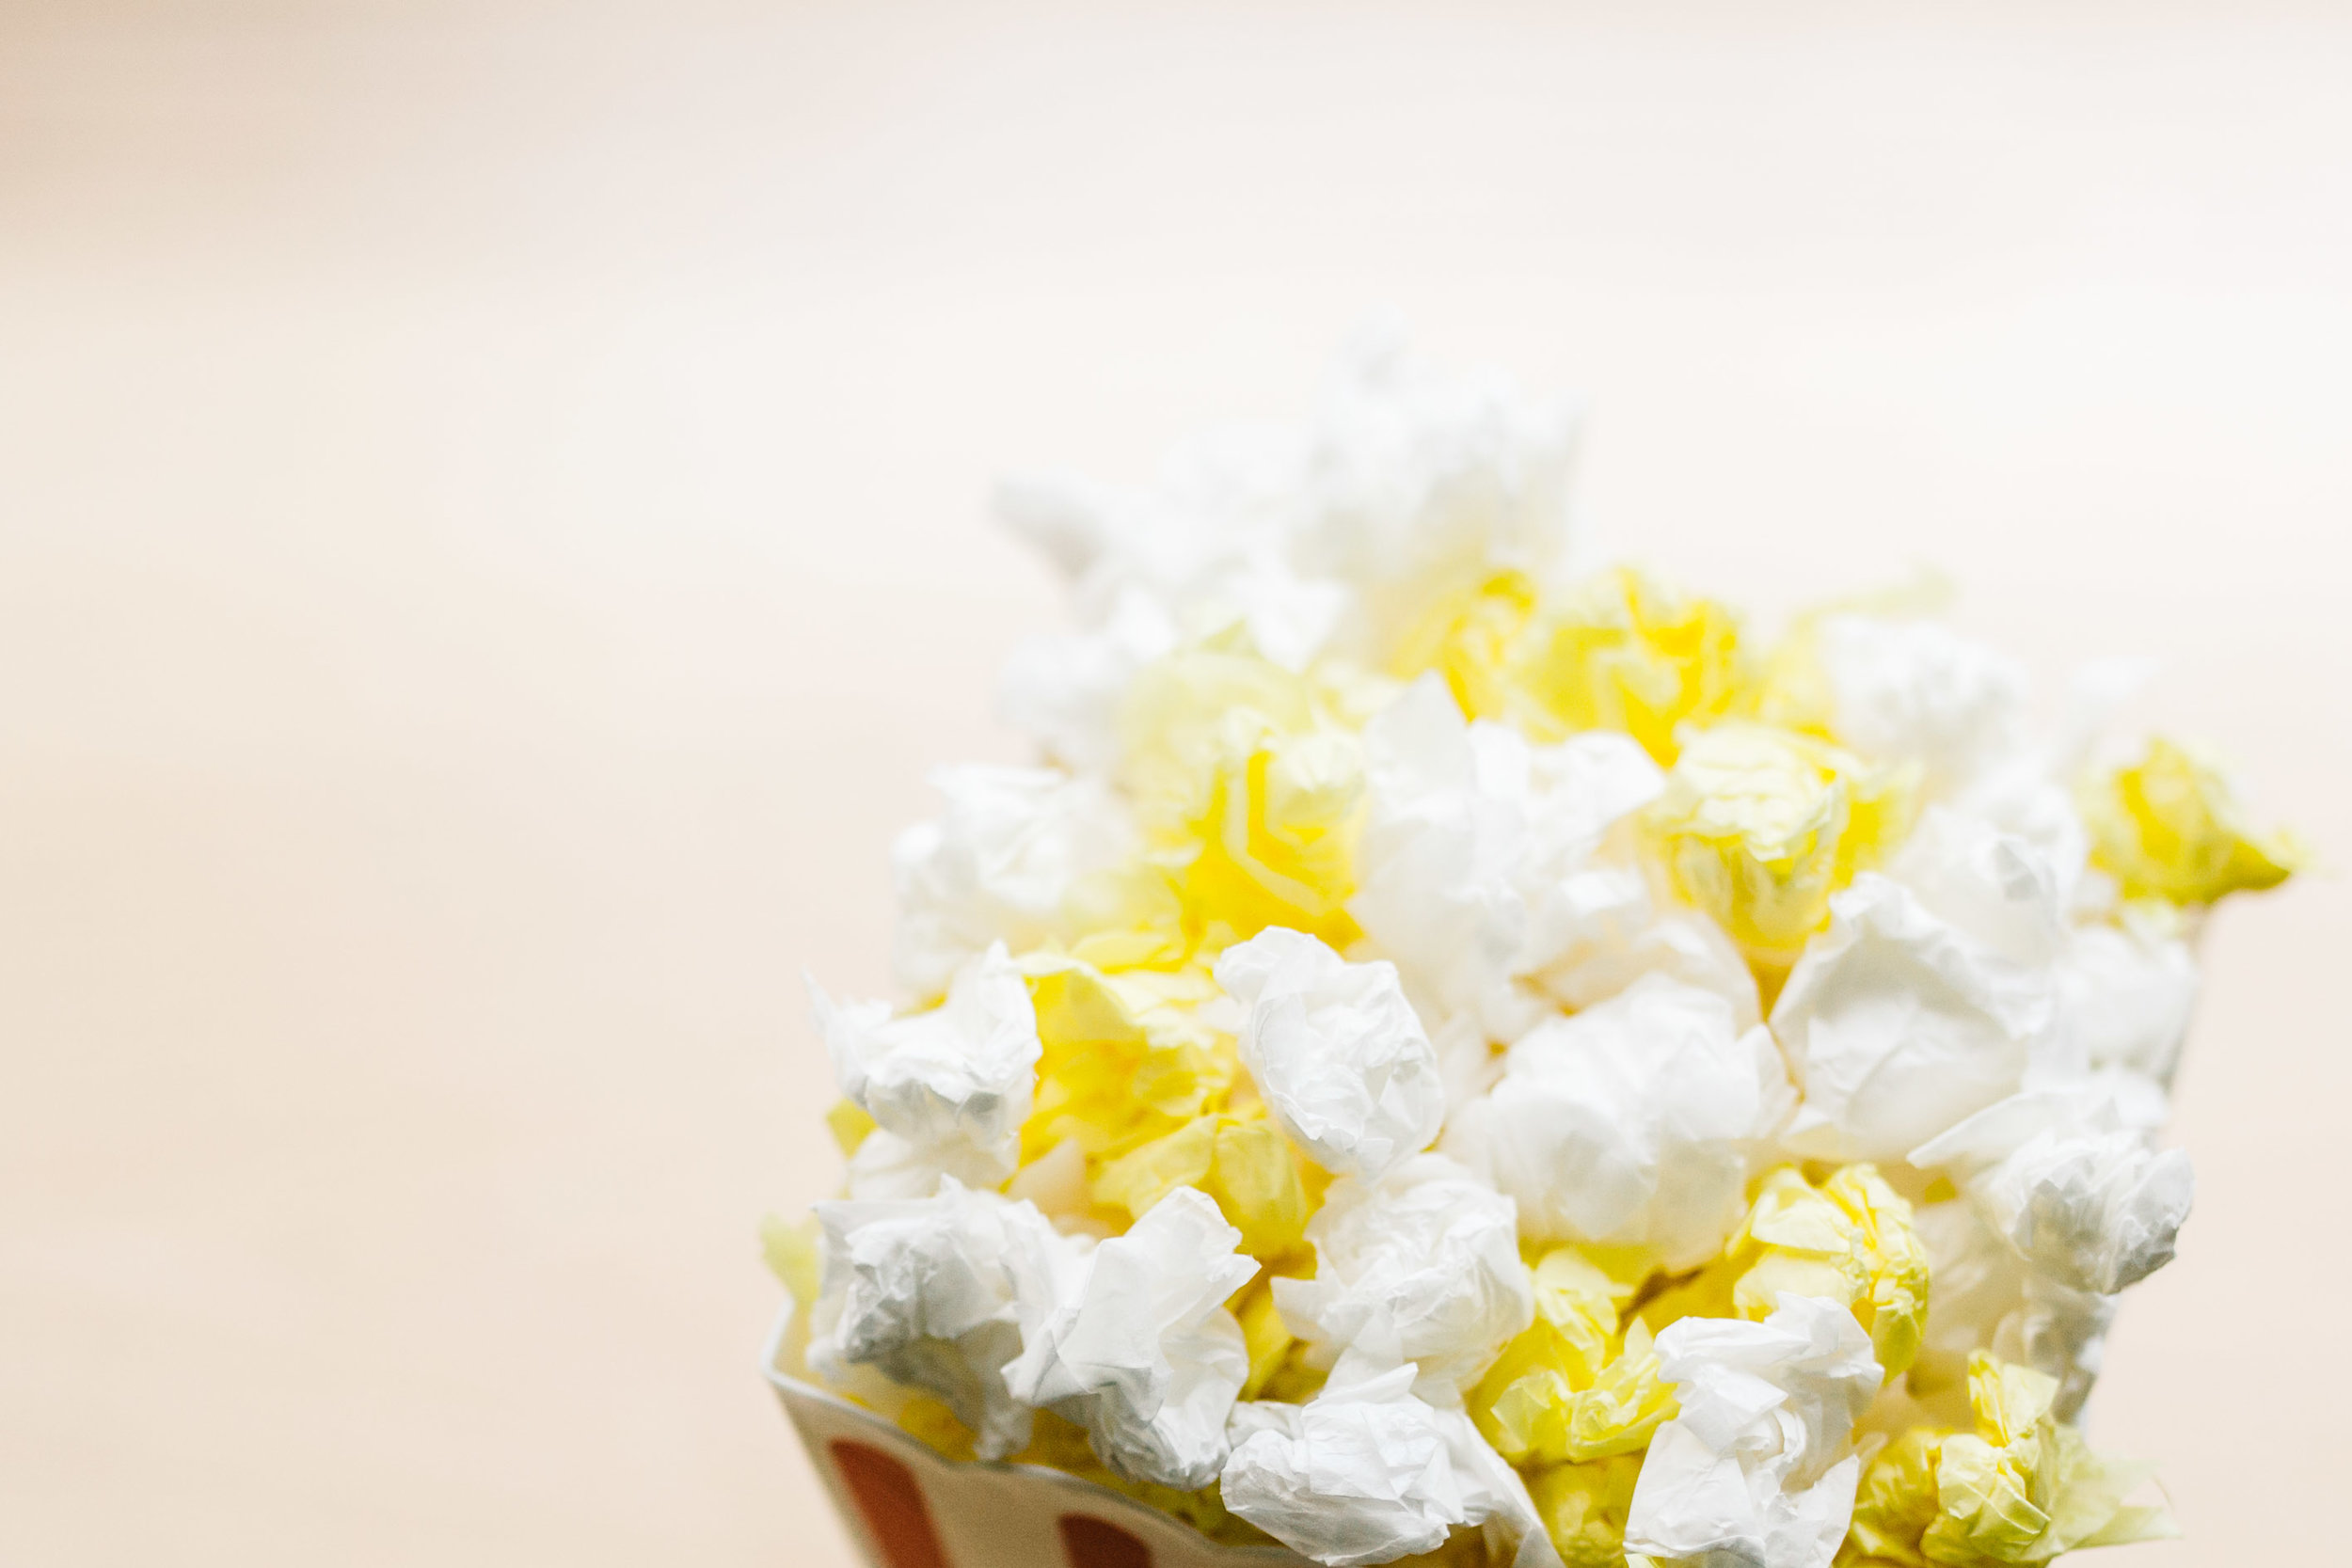 make popcorn out of paper | make fake popcorn | 100th day of school project | Jennifer Tippett Photography